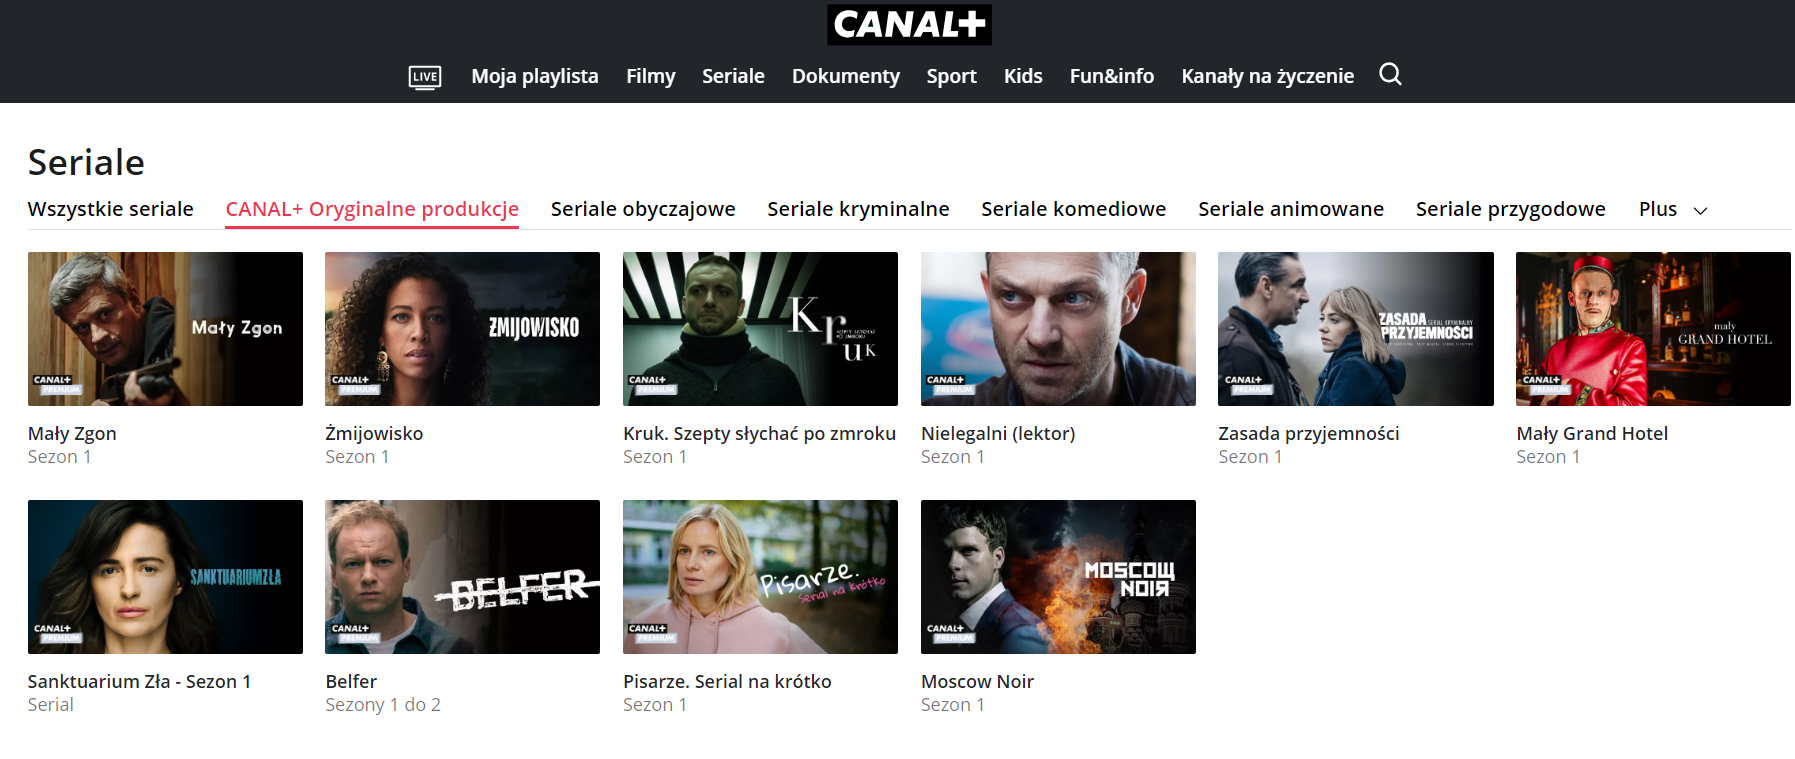 Canal+ seriale oryginalne